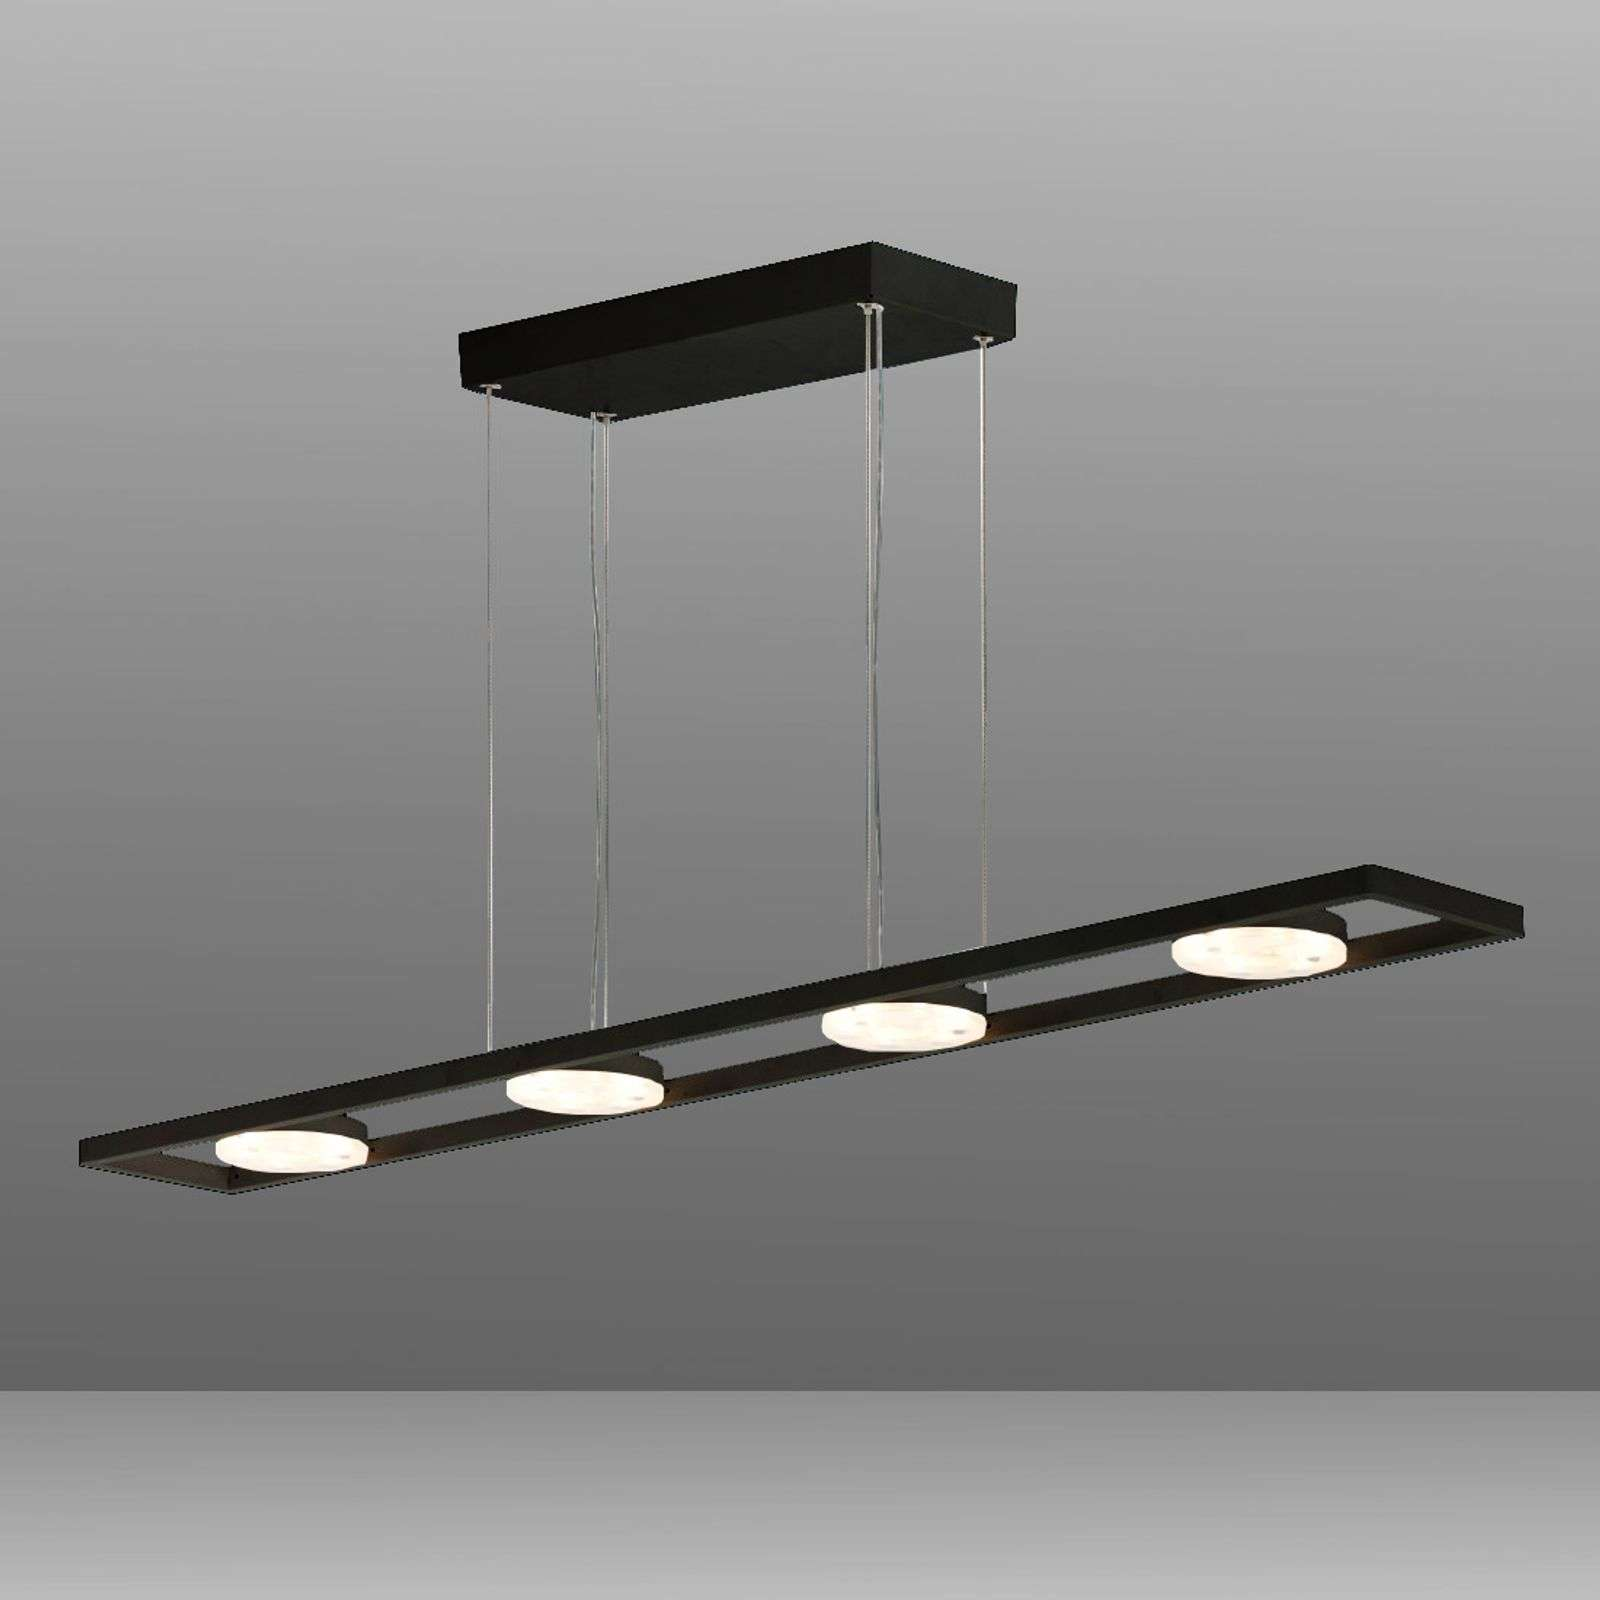 Suspension LED à 4 lampes TUNE-PL noire